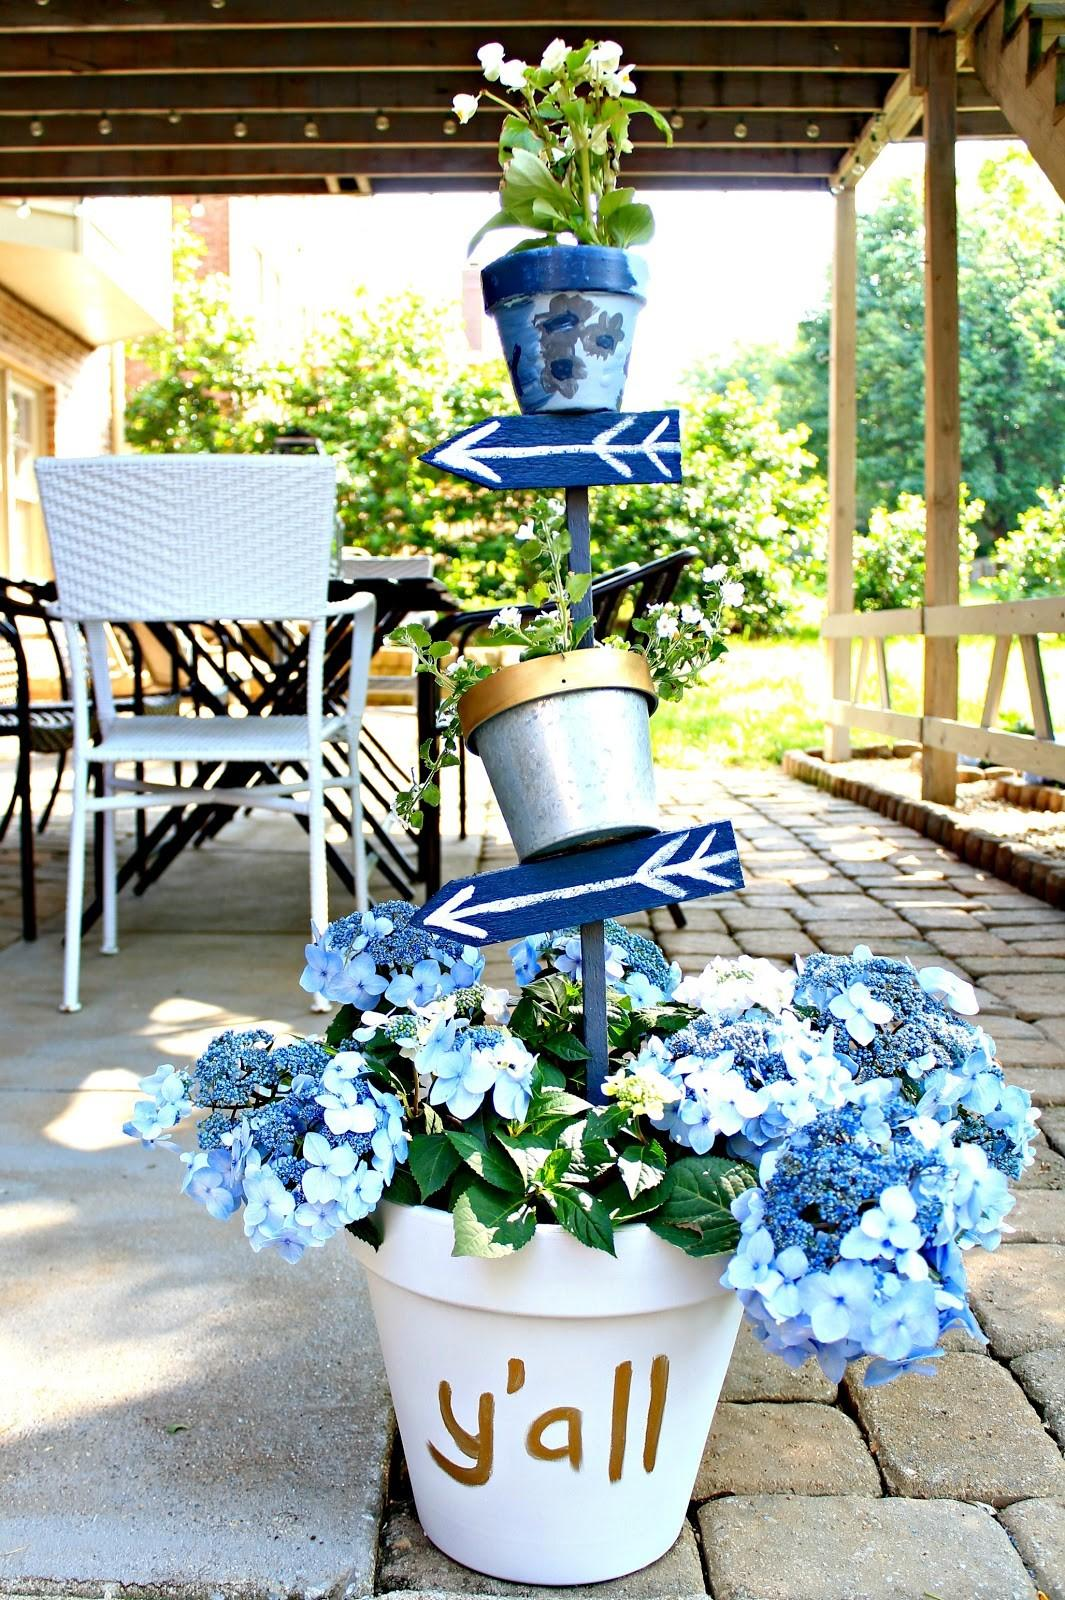 Make Tiered Planter Add Color Your Outdoor Spaces